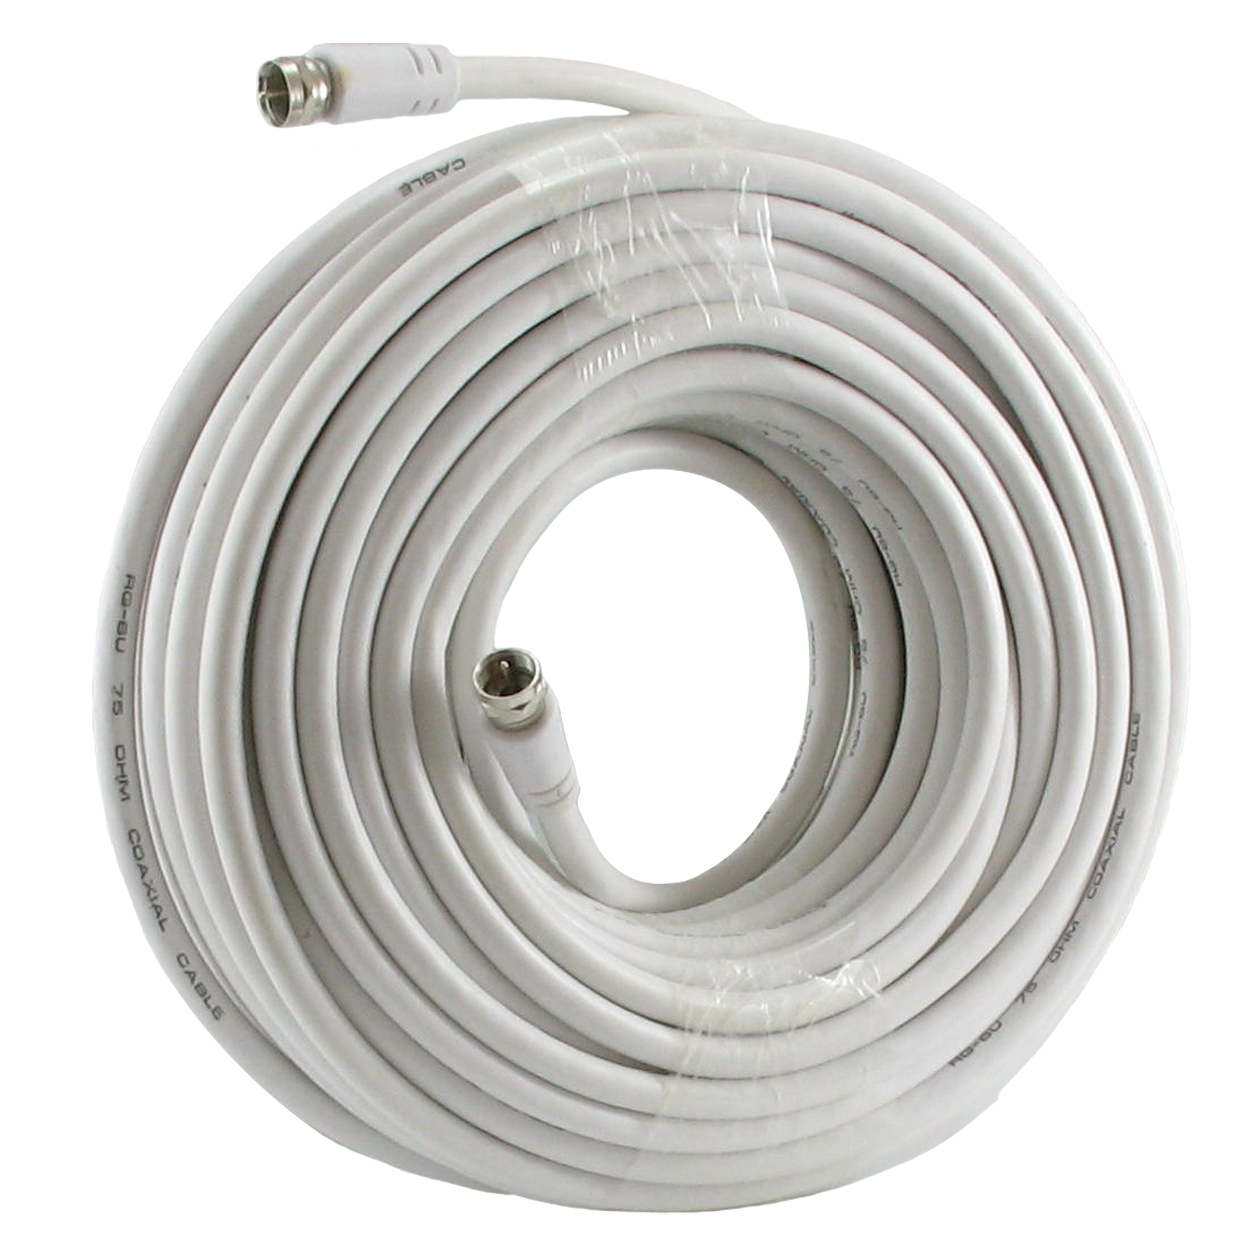 75 FT / RG-6U COAX CABLE TV/HD/SATELLITE F-TYPE